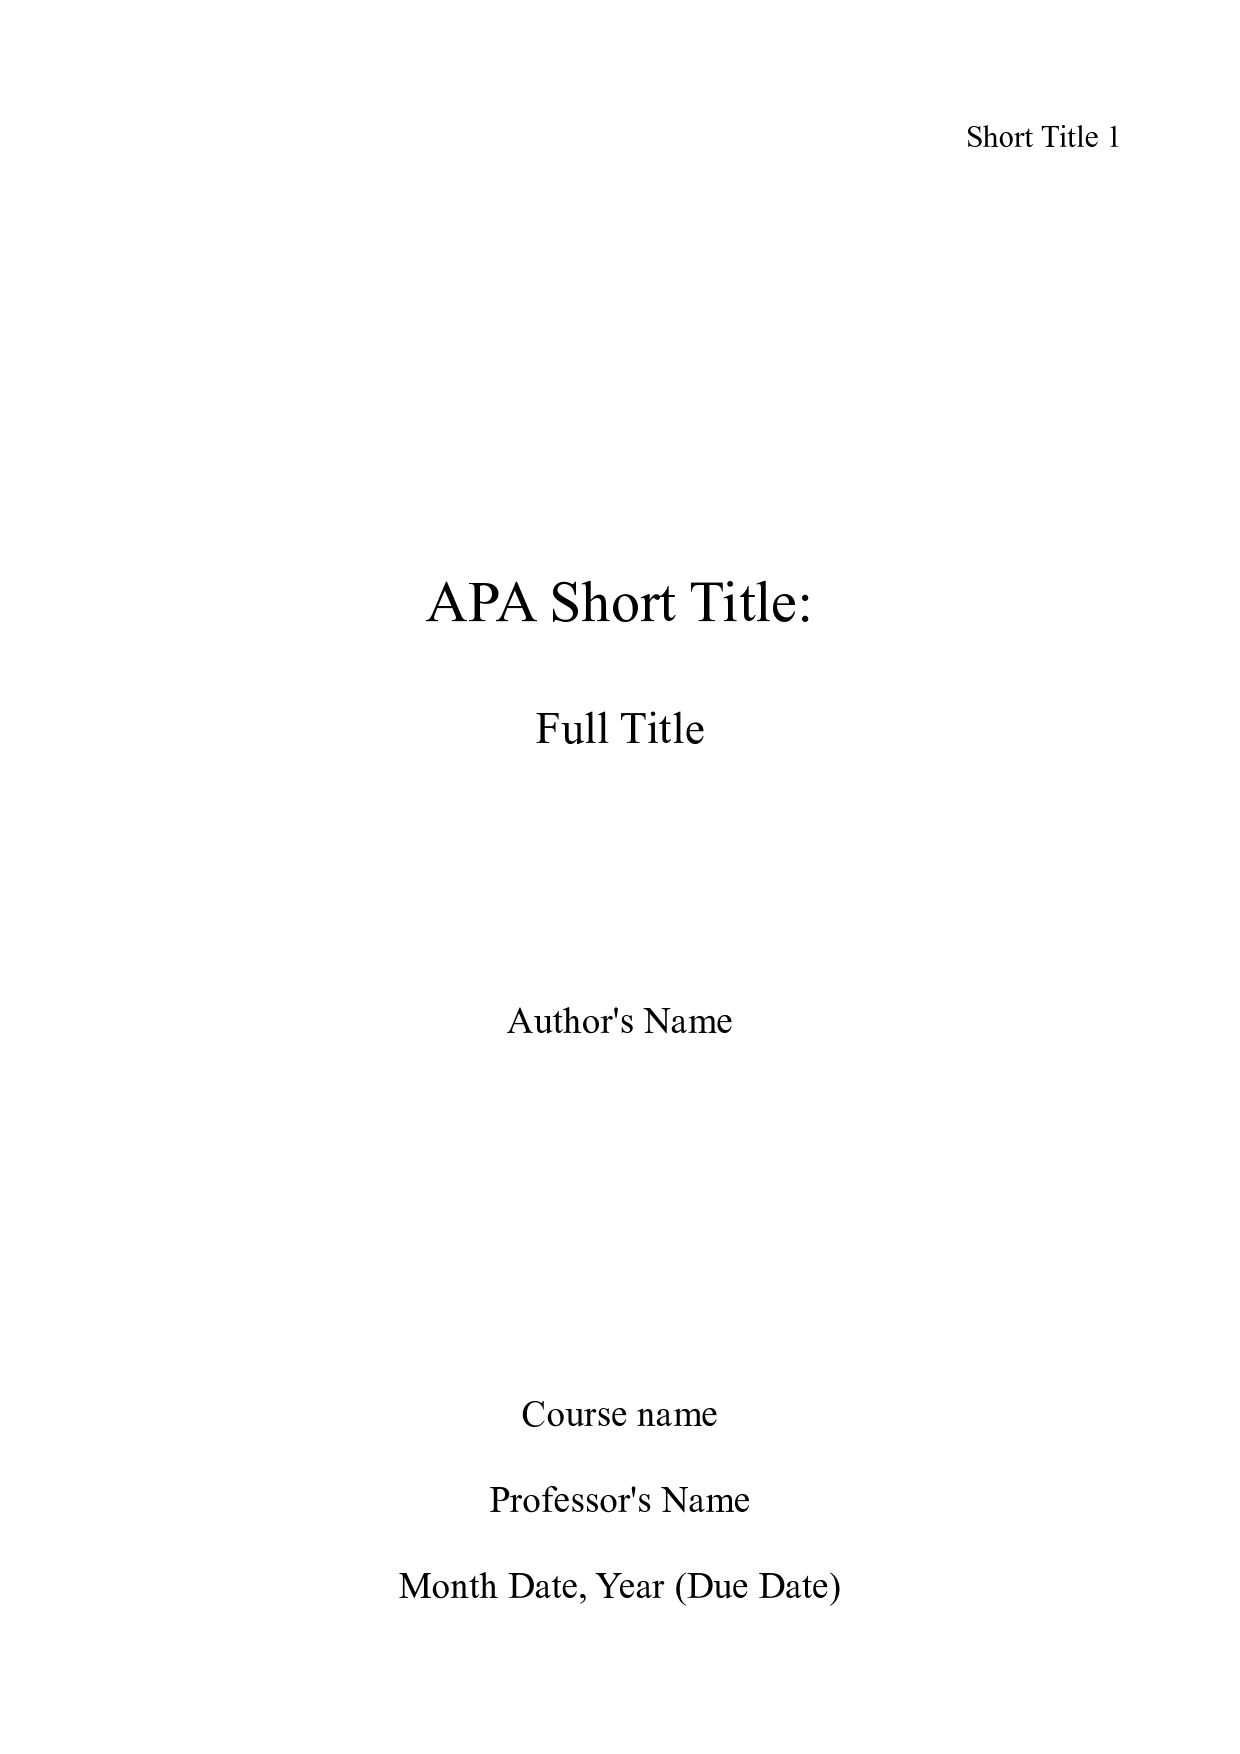 picture of of an apa title page apa essay help style and get apa essay help on apa essay format and apa style for apa college essay format assignmnments review examples and ask questions online